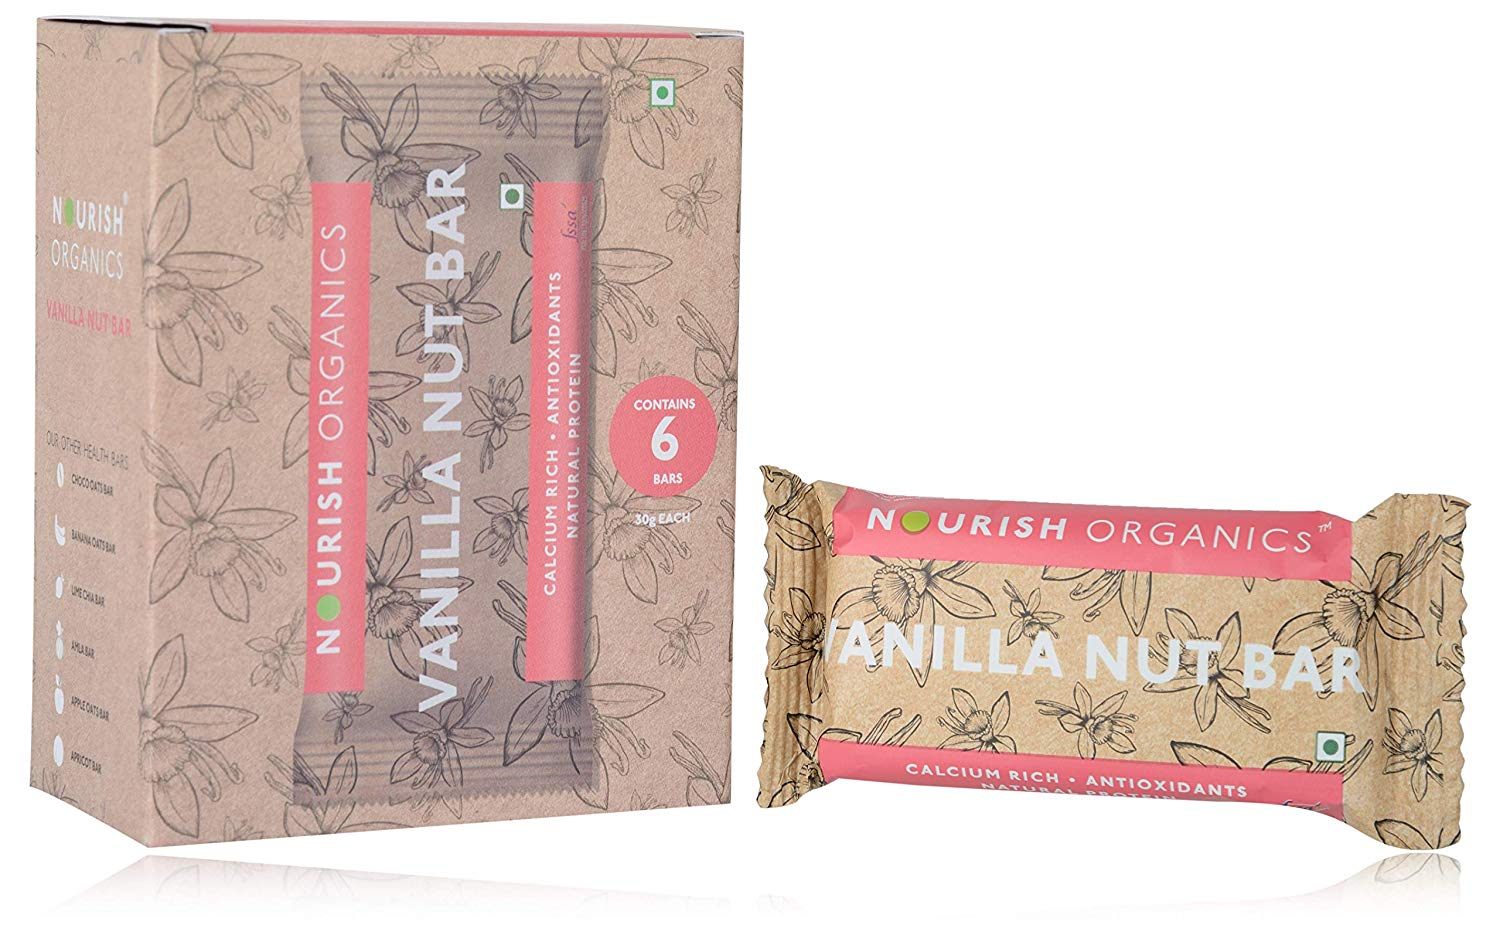 Nourish Organics Vanilla Nut Bar - Pack of 6 (30g x 6) - NutraC - Health & Nutrition Store